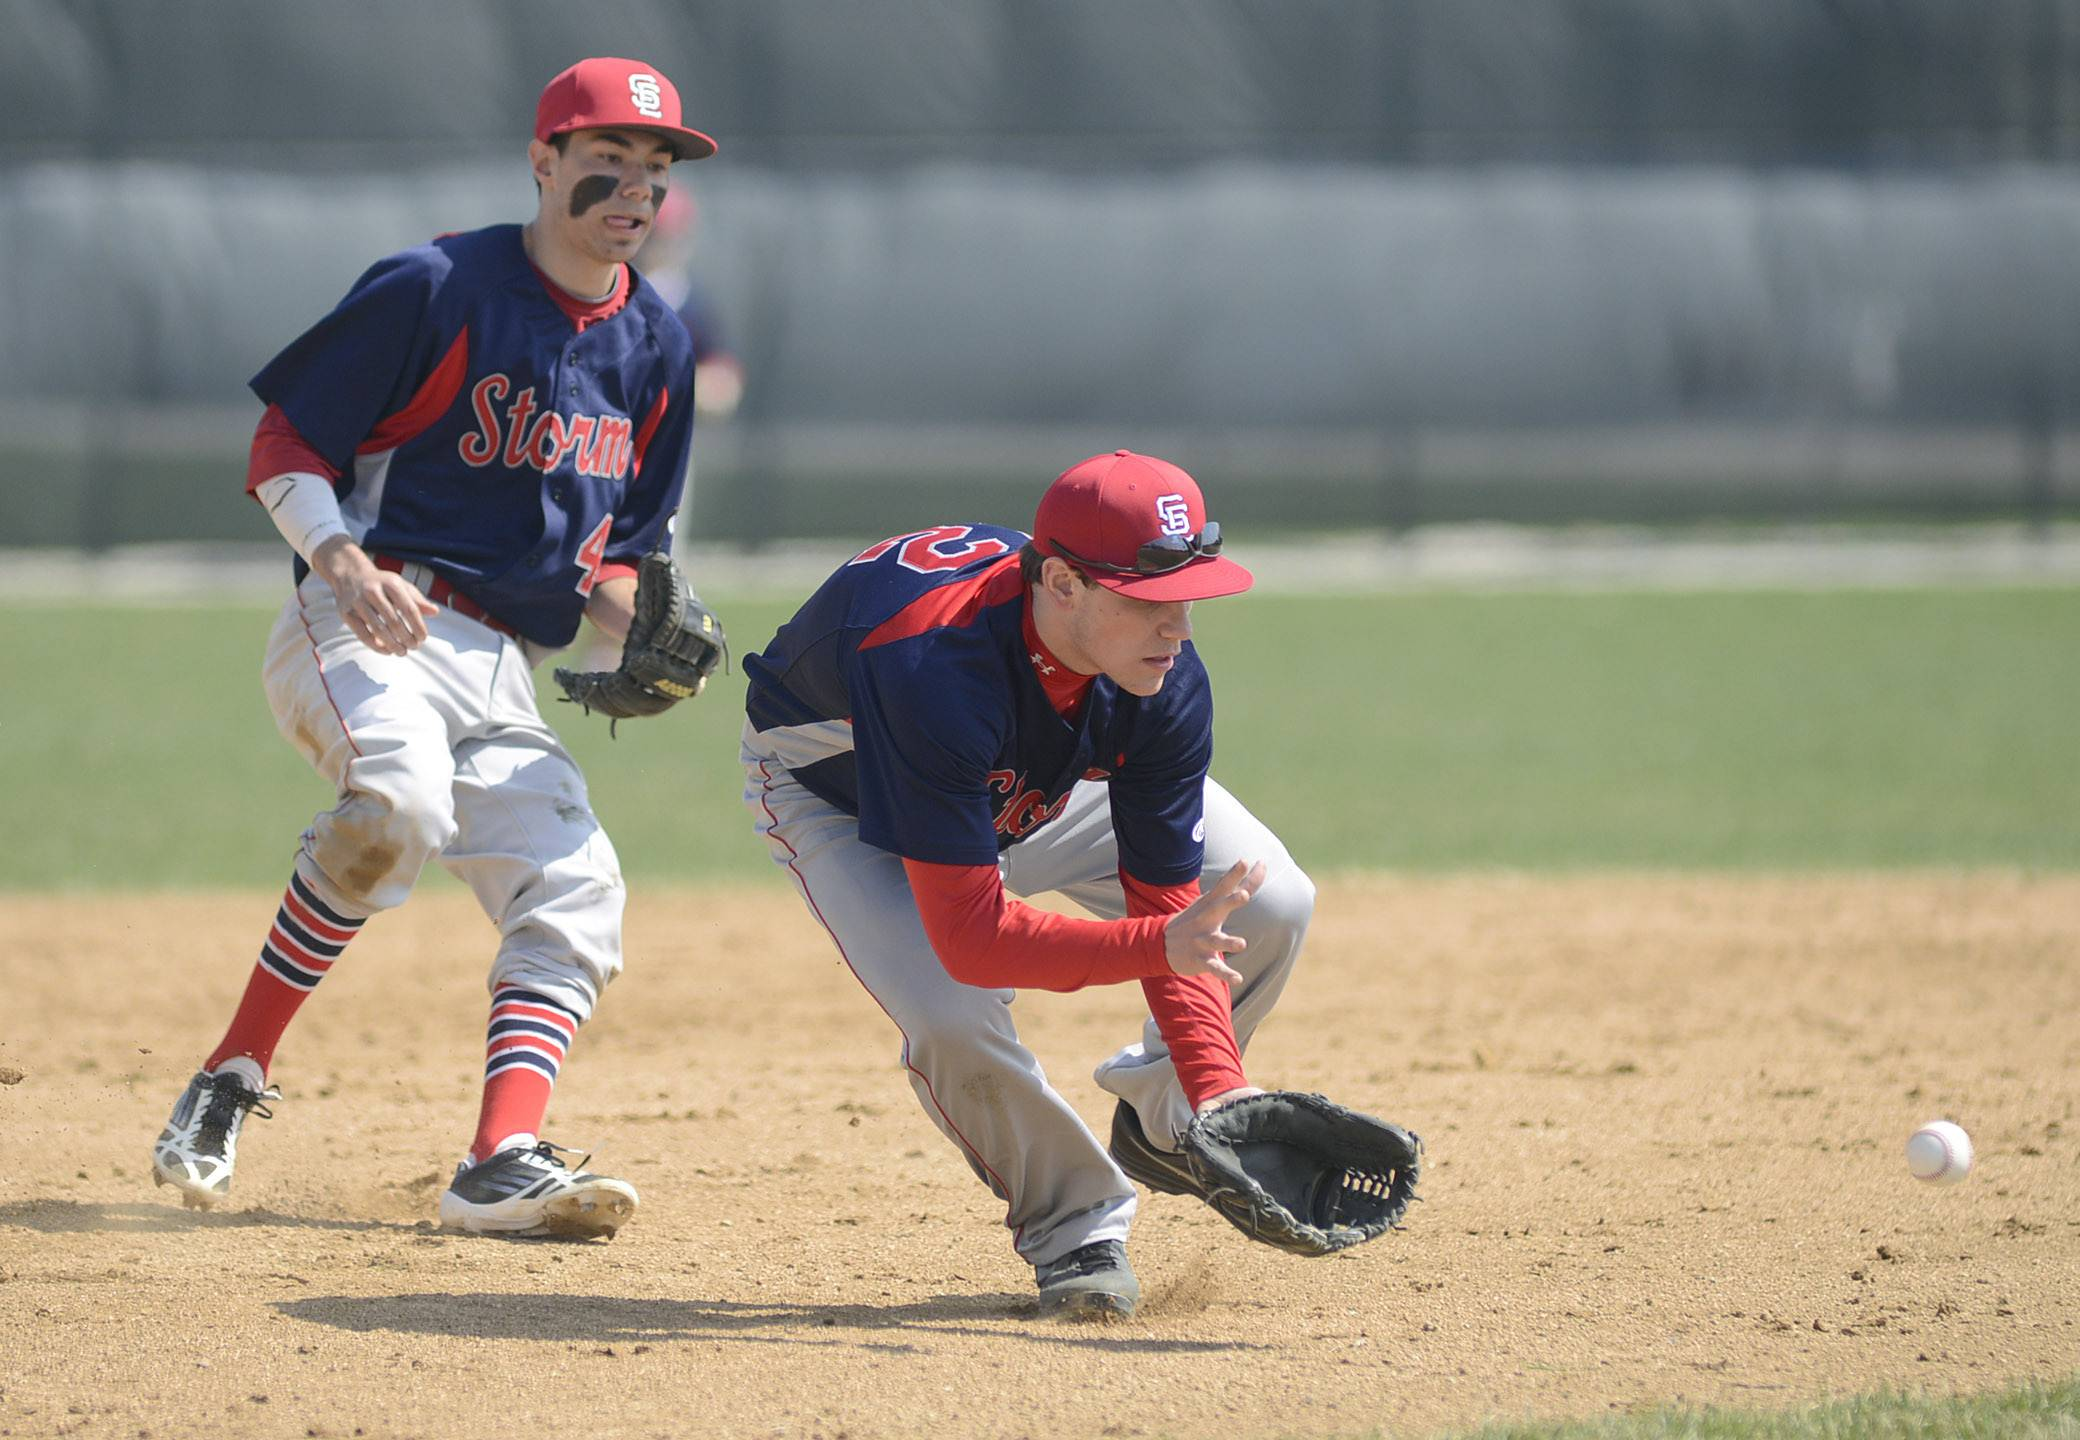 South Elgin's Kyle Hays scoops up a grounder Friday.